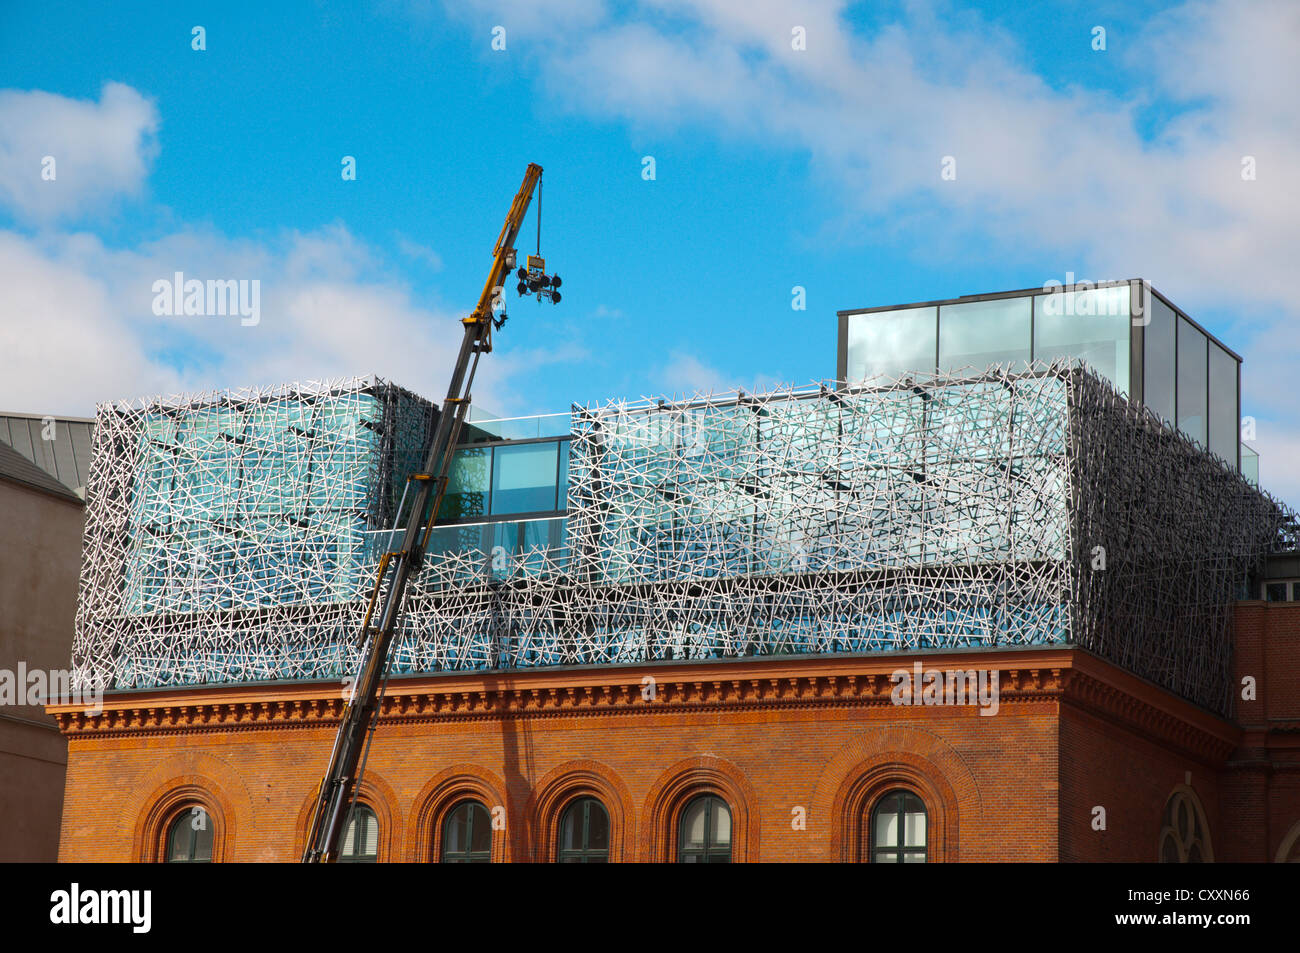 Extension work installation of new floors on top of old building Norreport central Copenhagen Denmark Europe - Stock Image